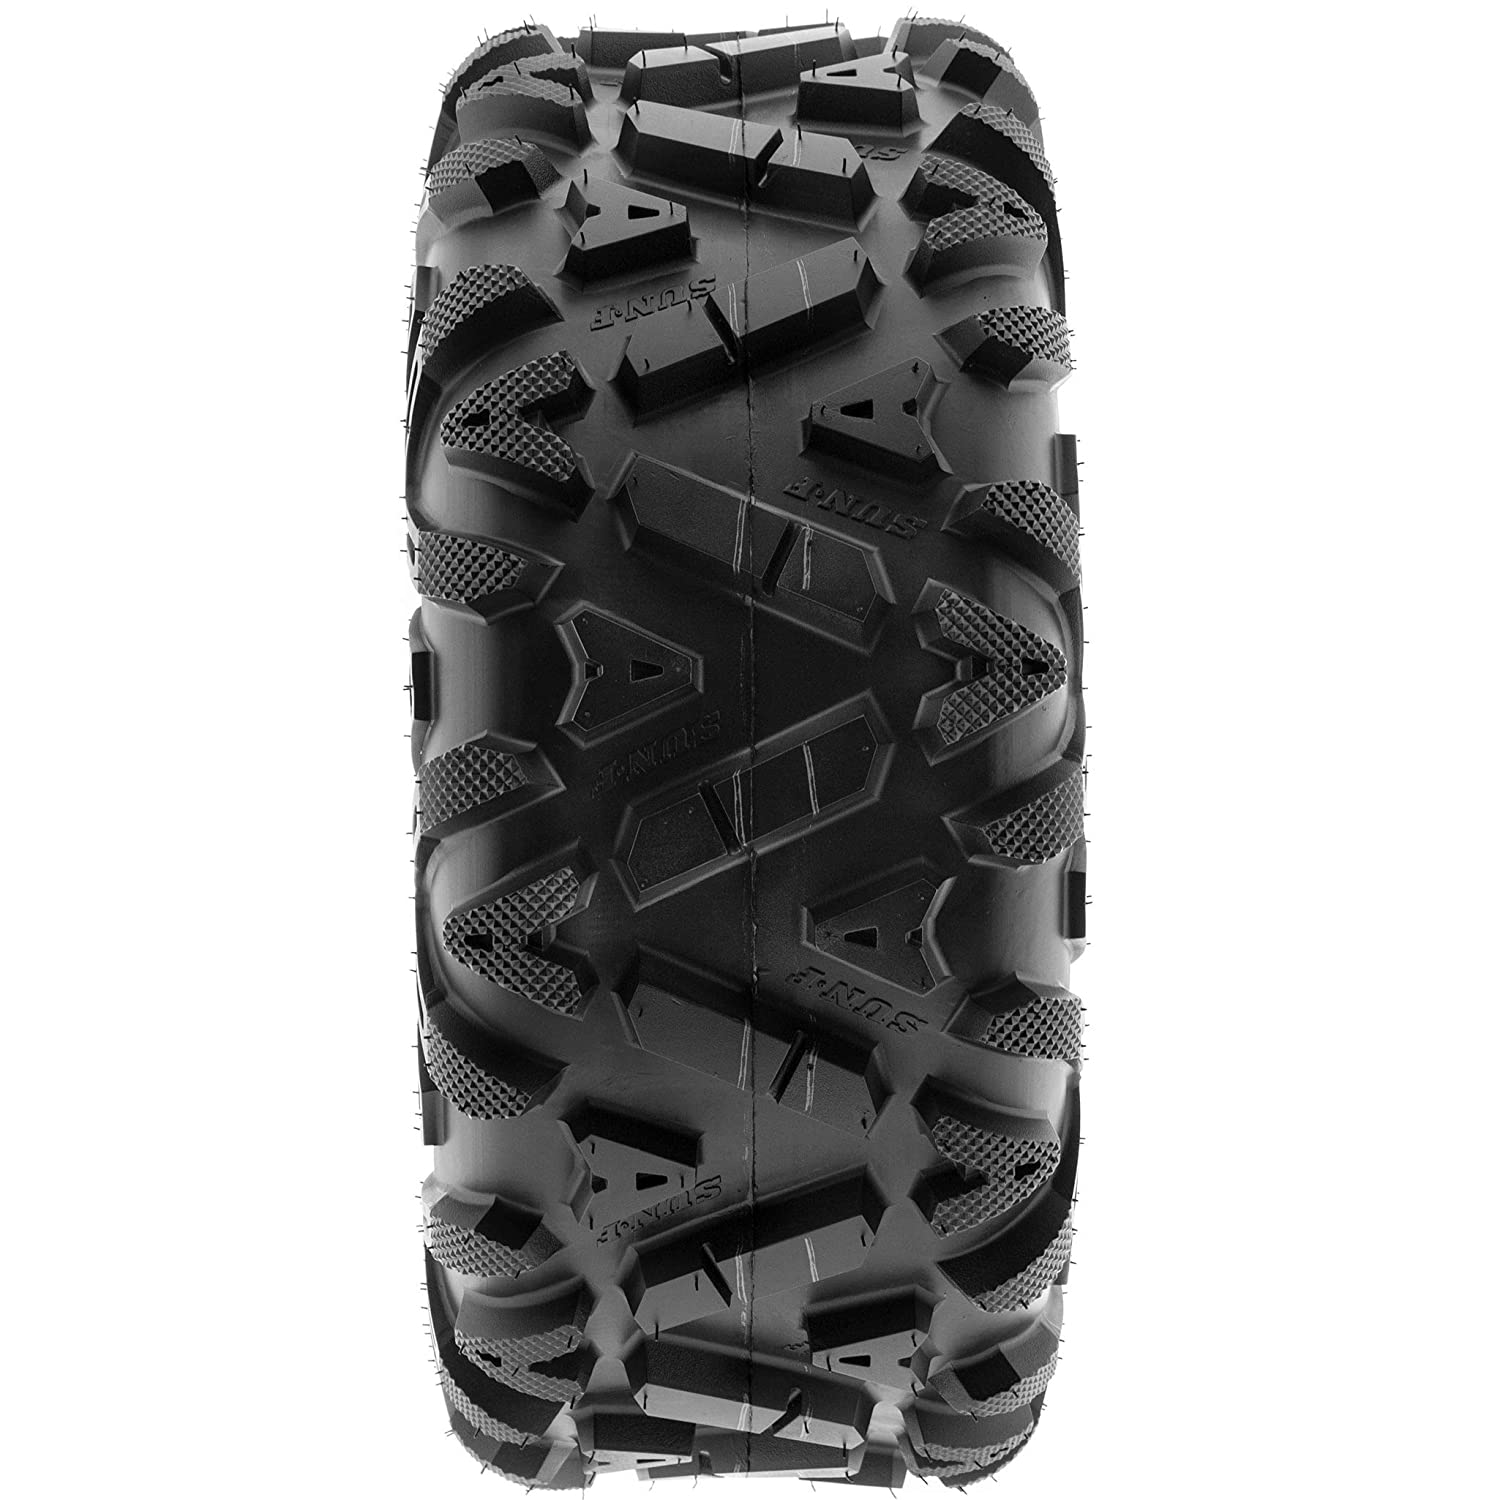 Sun.F A033 ATV Tire 27x11-12 Rear Set of 2 6 Ply